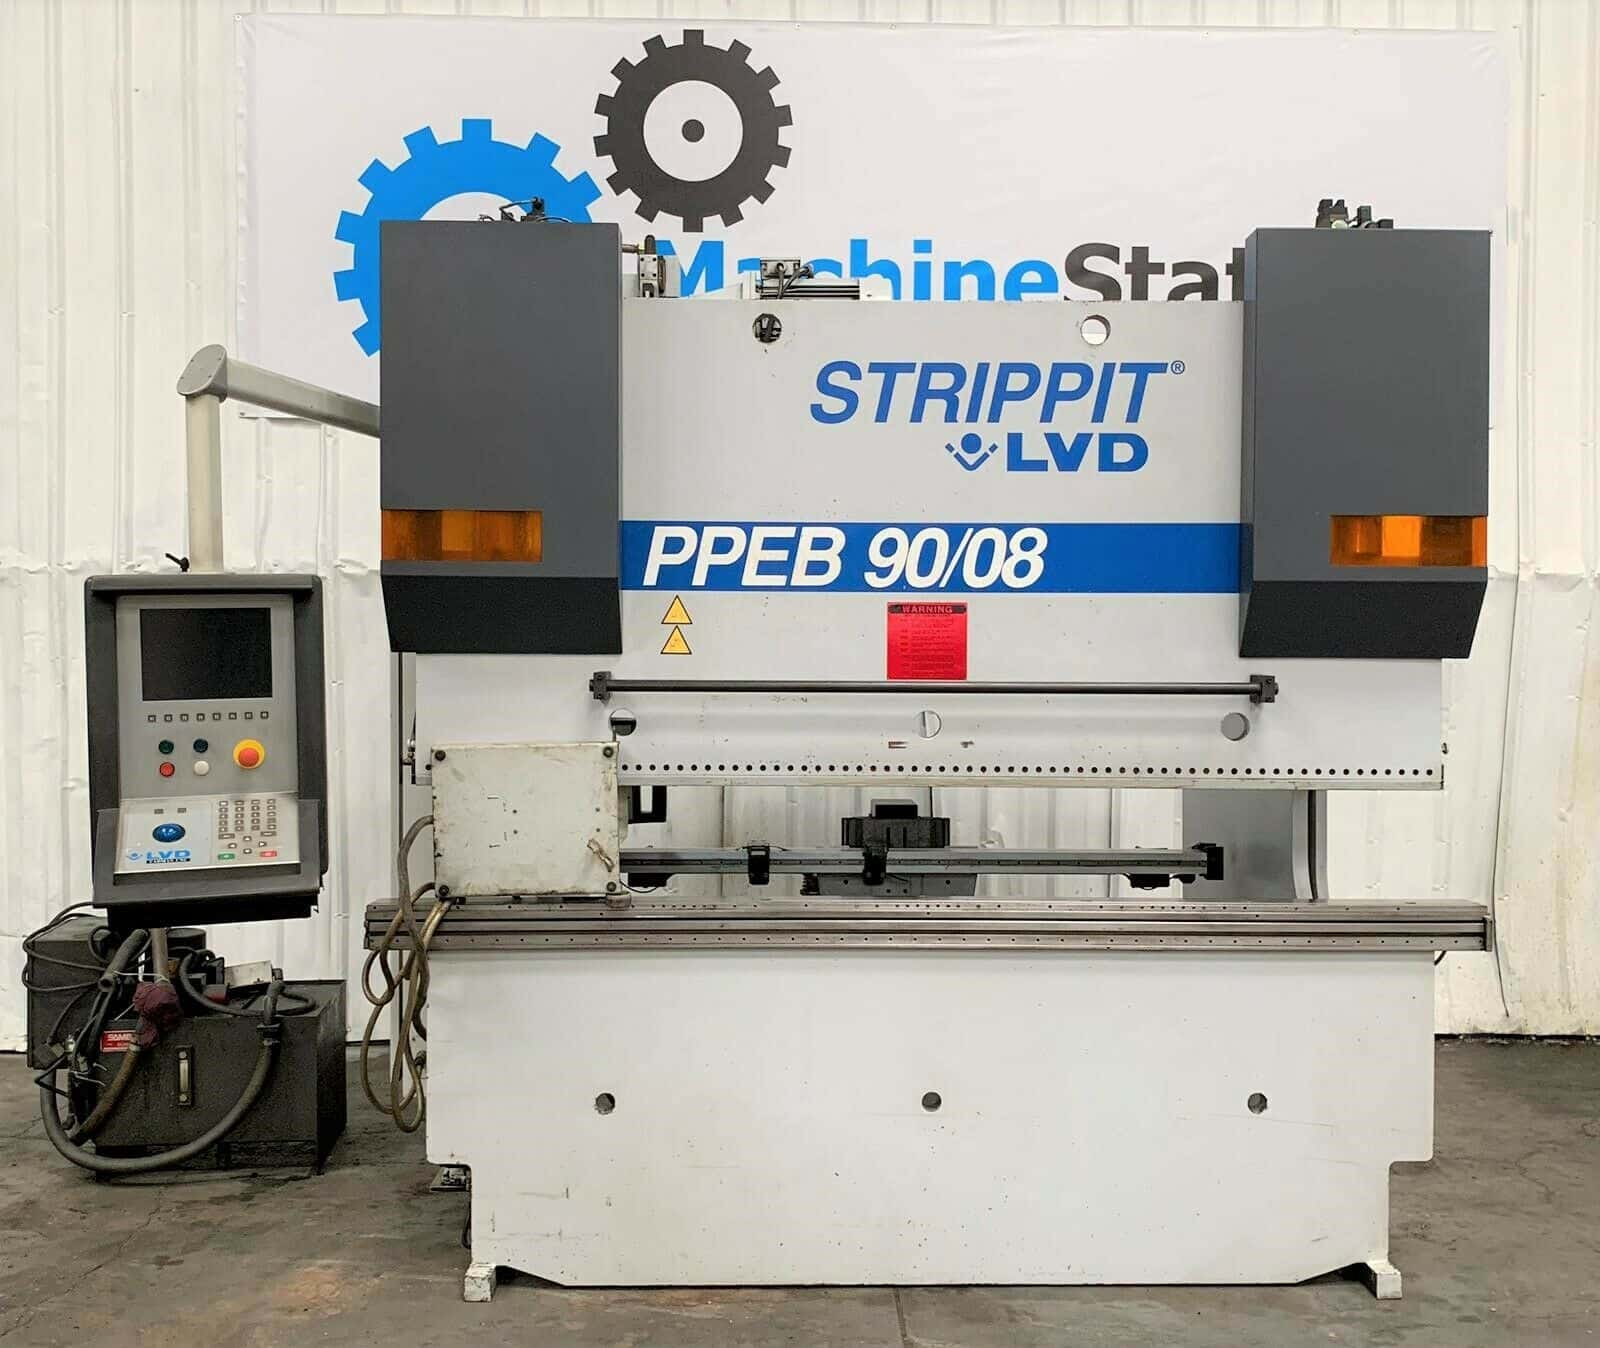 Strippit LVD PPEB 90/08 Hydraulic CNC Press Brake - MachineStation